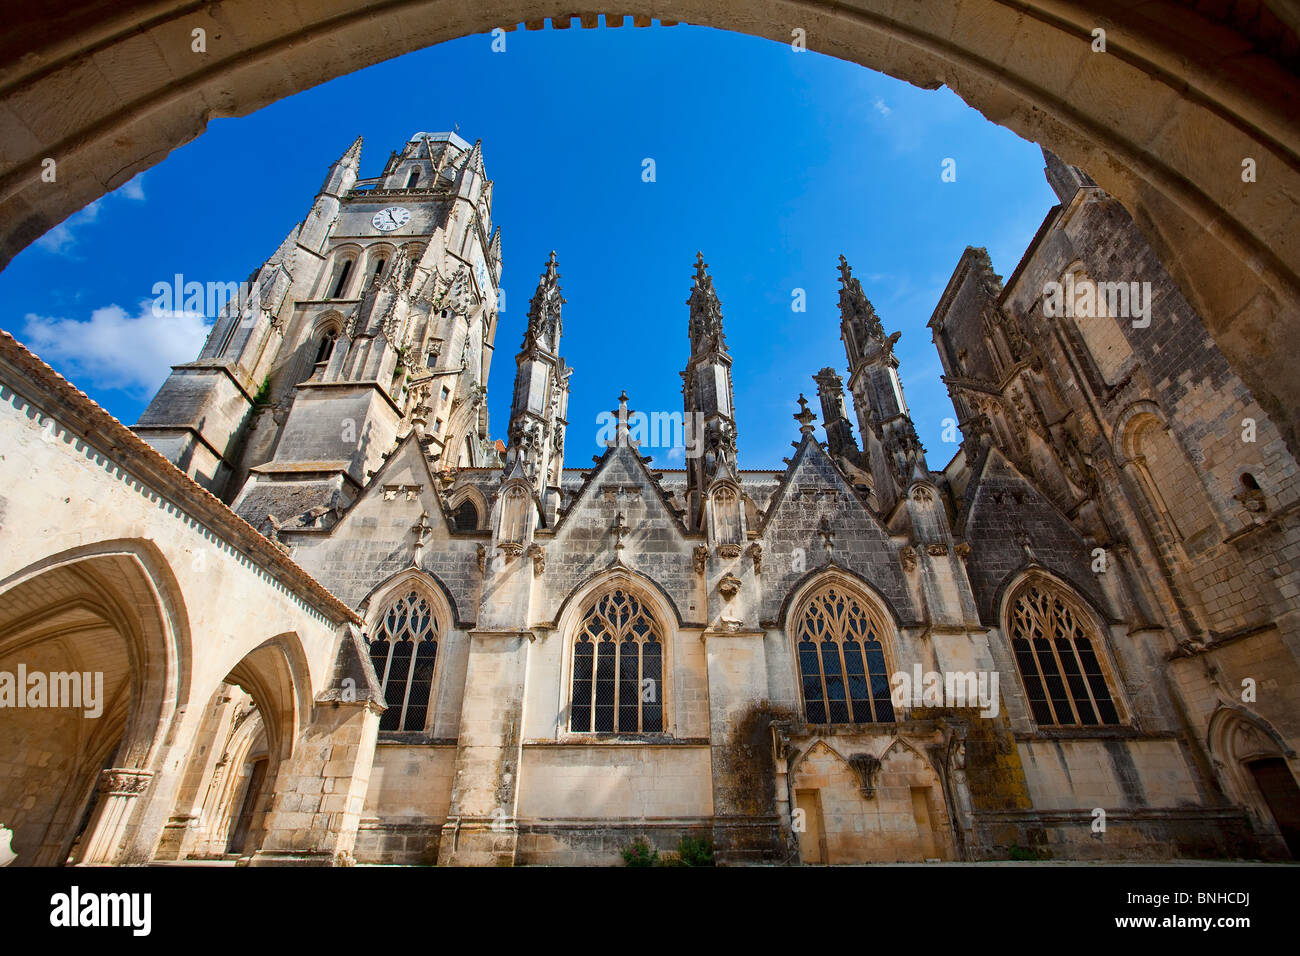 Europe, France, Charente-Maritime (17), Saintes, Saint-Pierre Cathedral - Stock Image